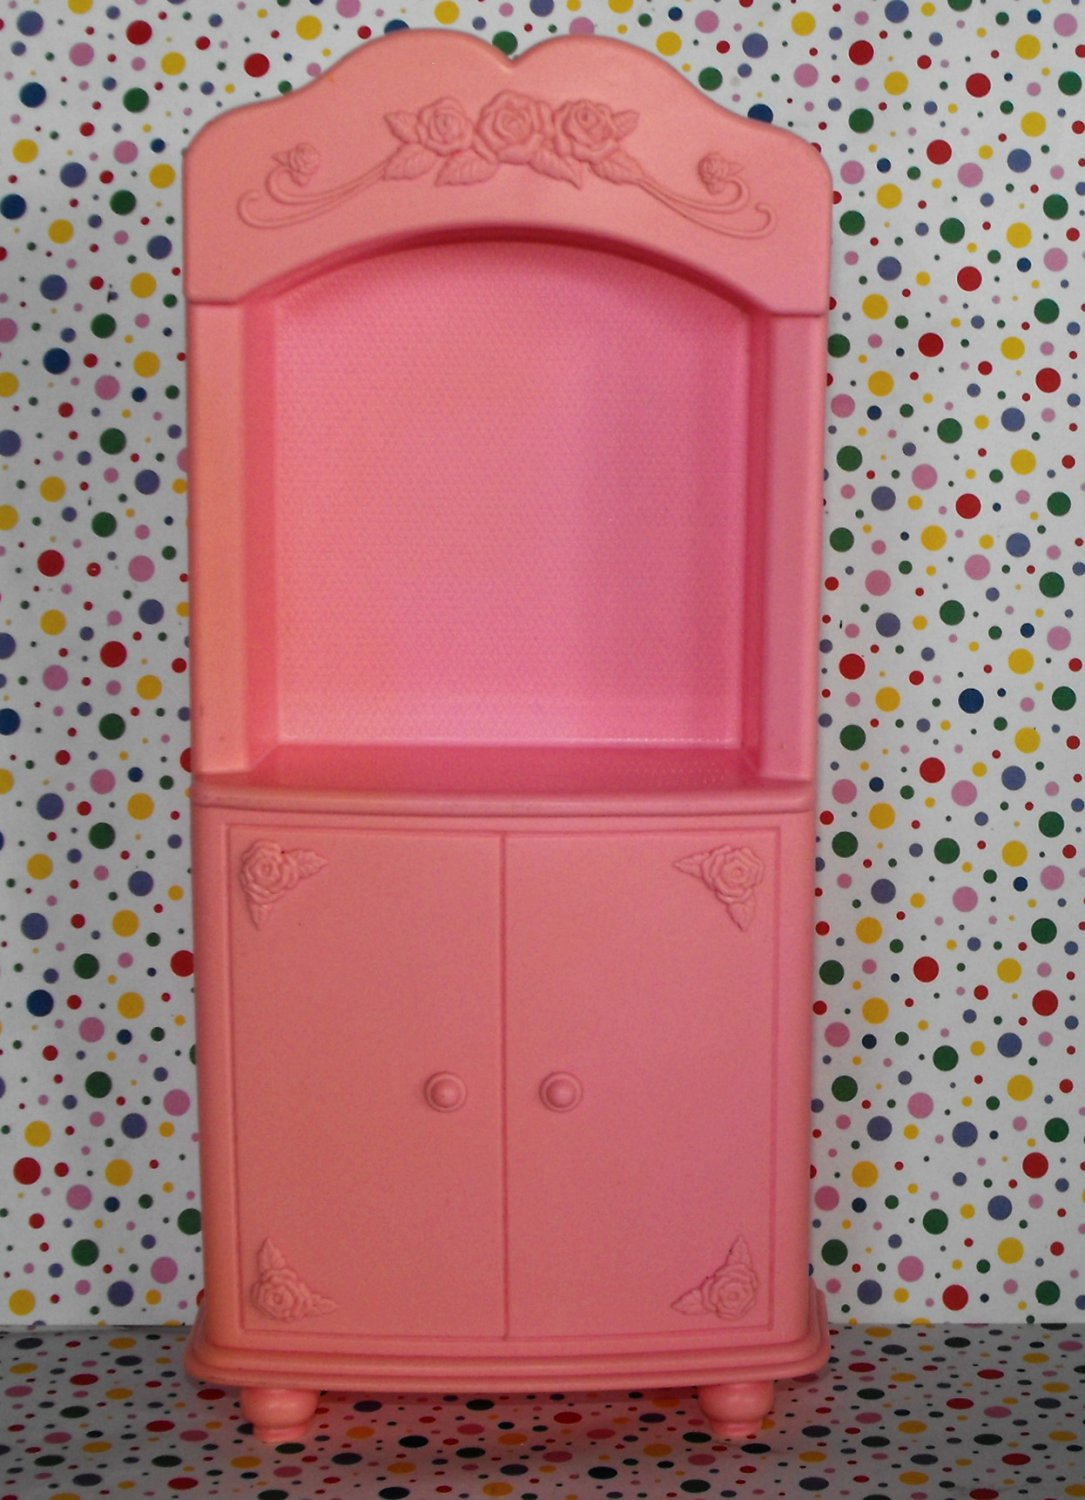 Barbie Bedroom Playset TV Ar moire Cabinet Dollhouse Furniture